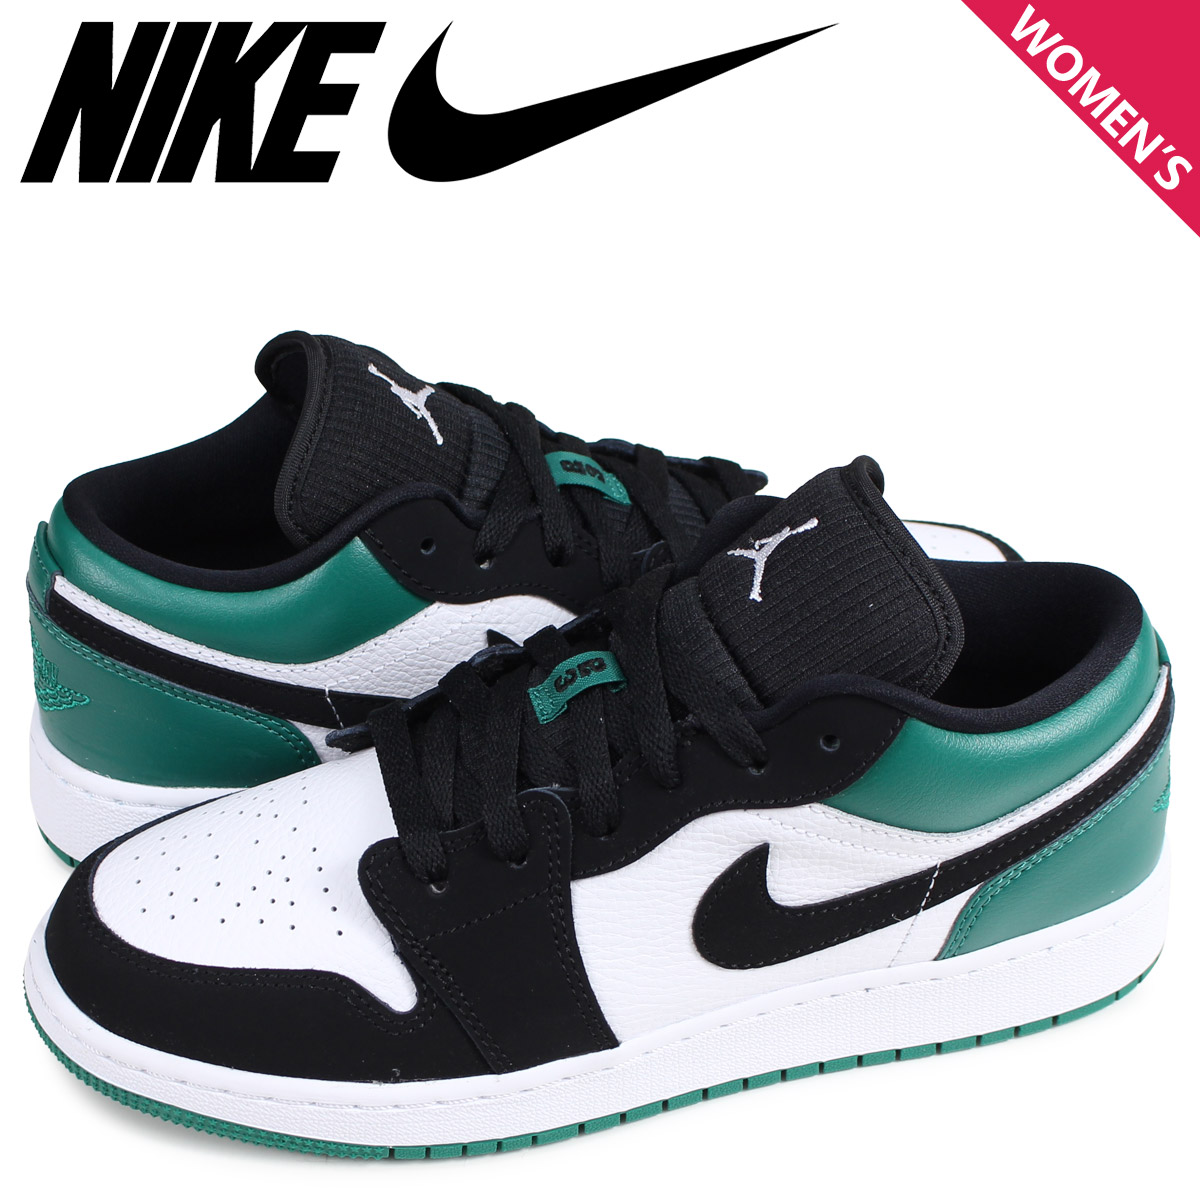 nike holiday Page 10 GB Sneakers